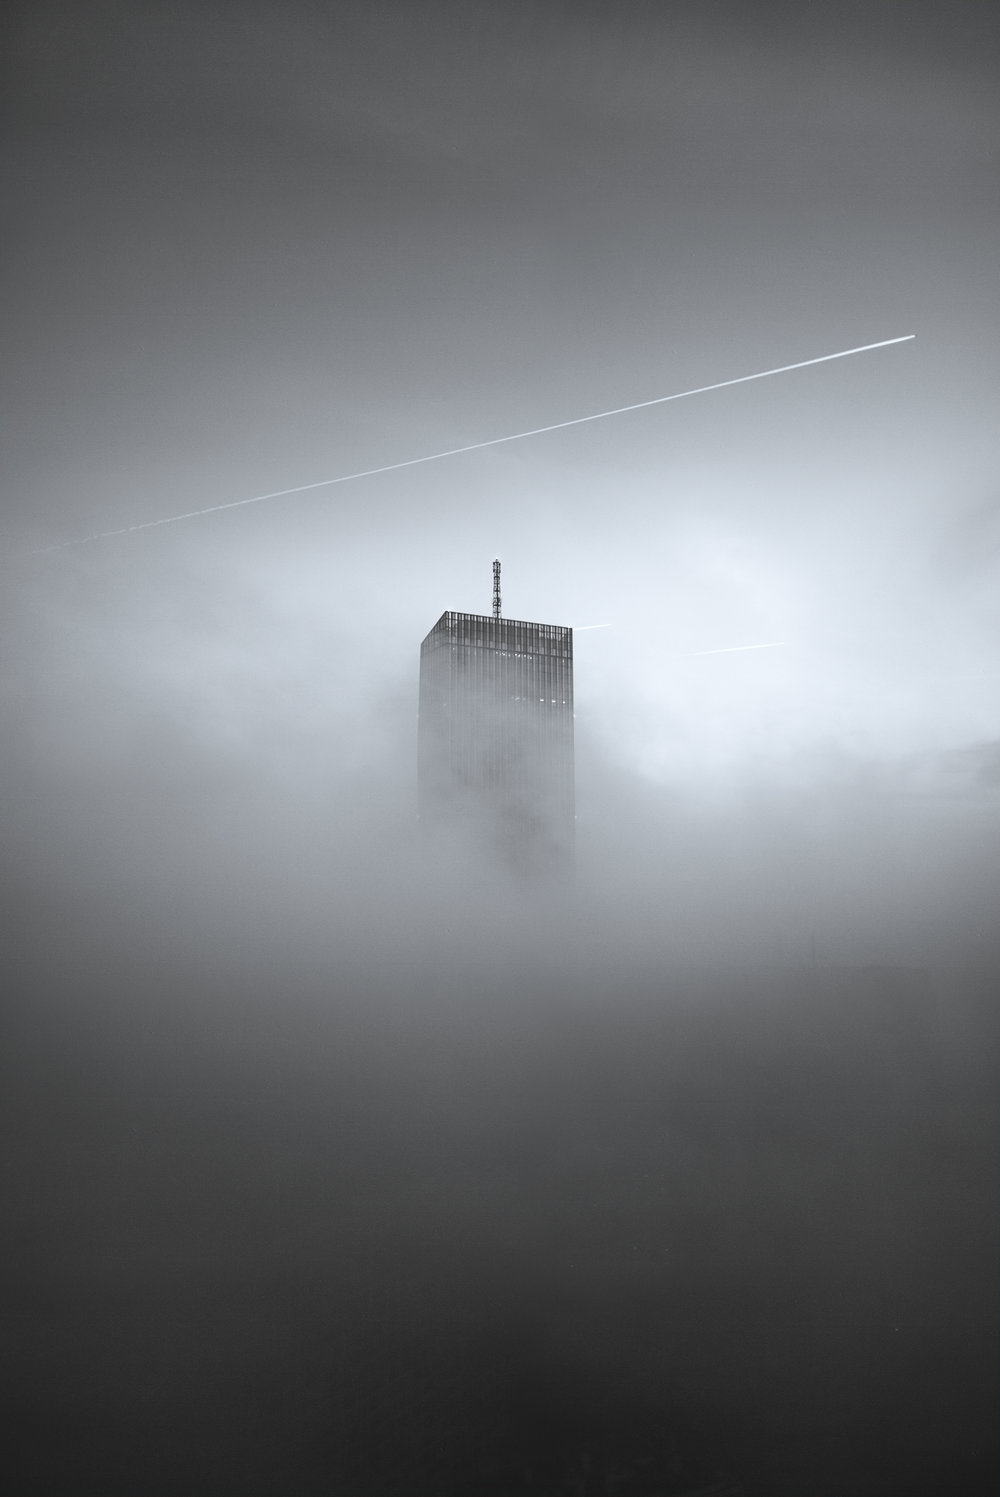 - Just imagine the best moments appearing right in front of your eyes (this amazing fog in Vienna) and you not having your camera with you.